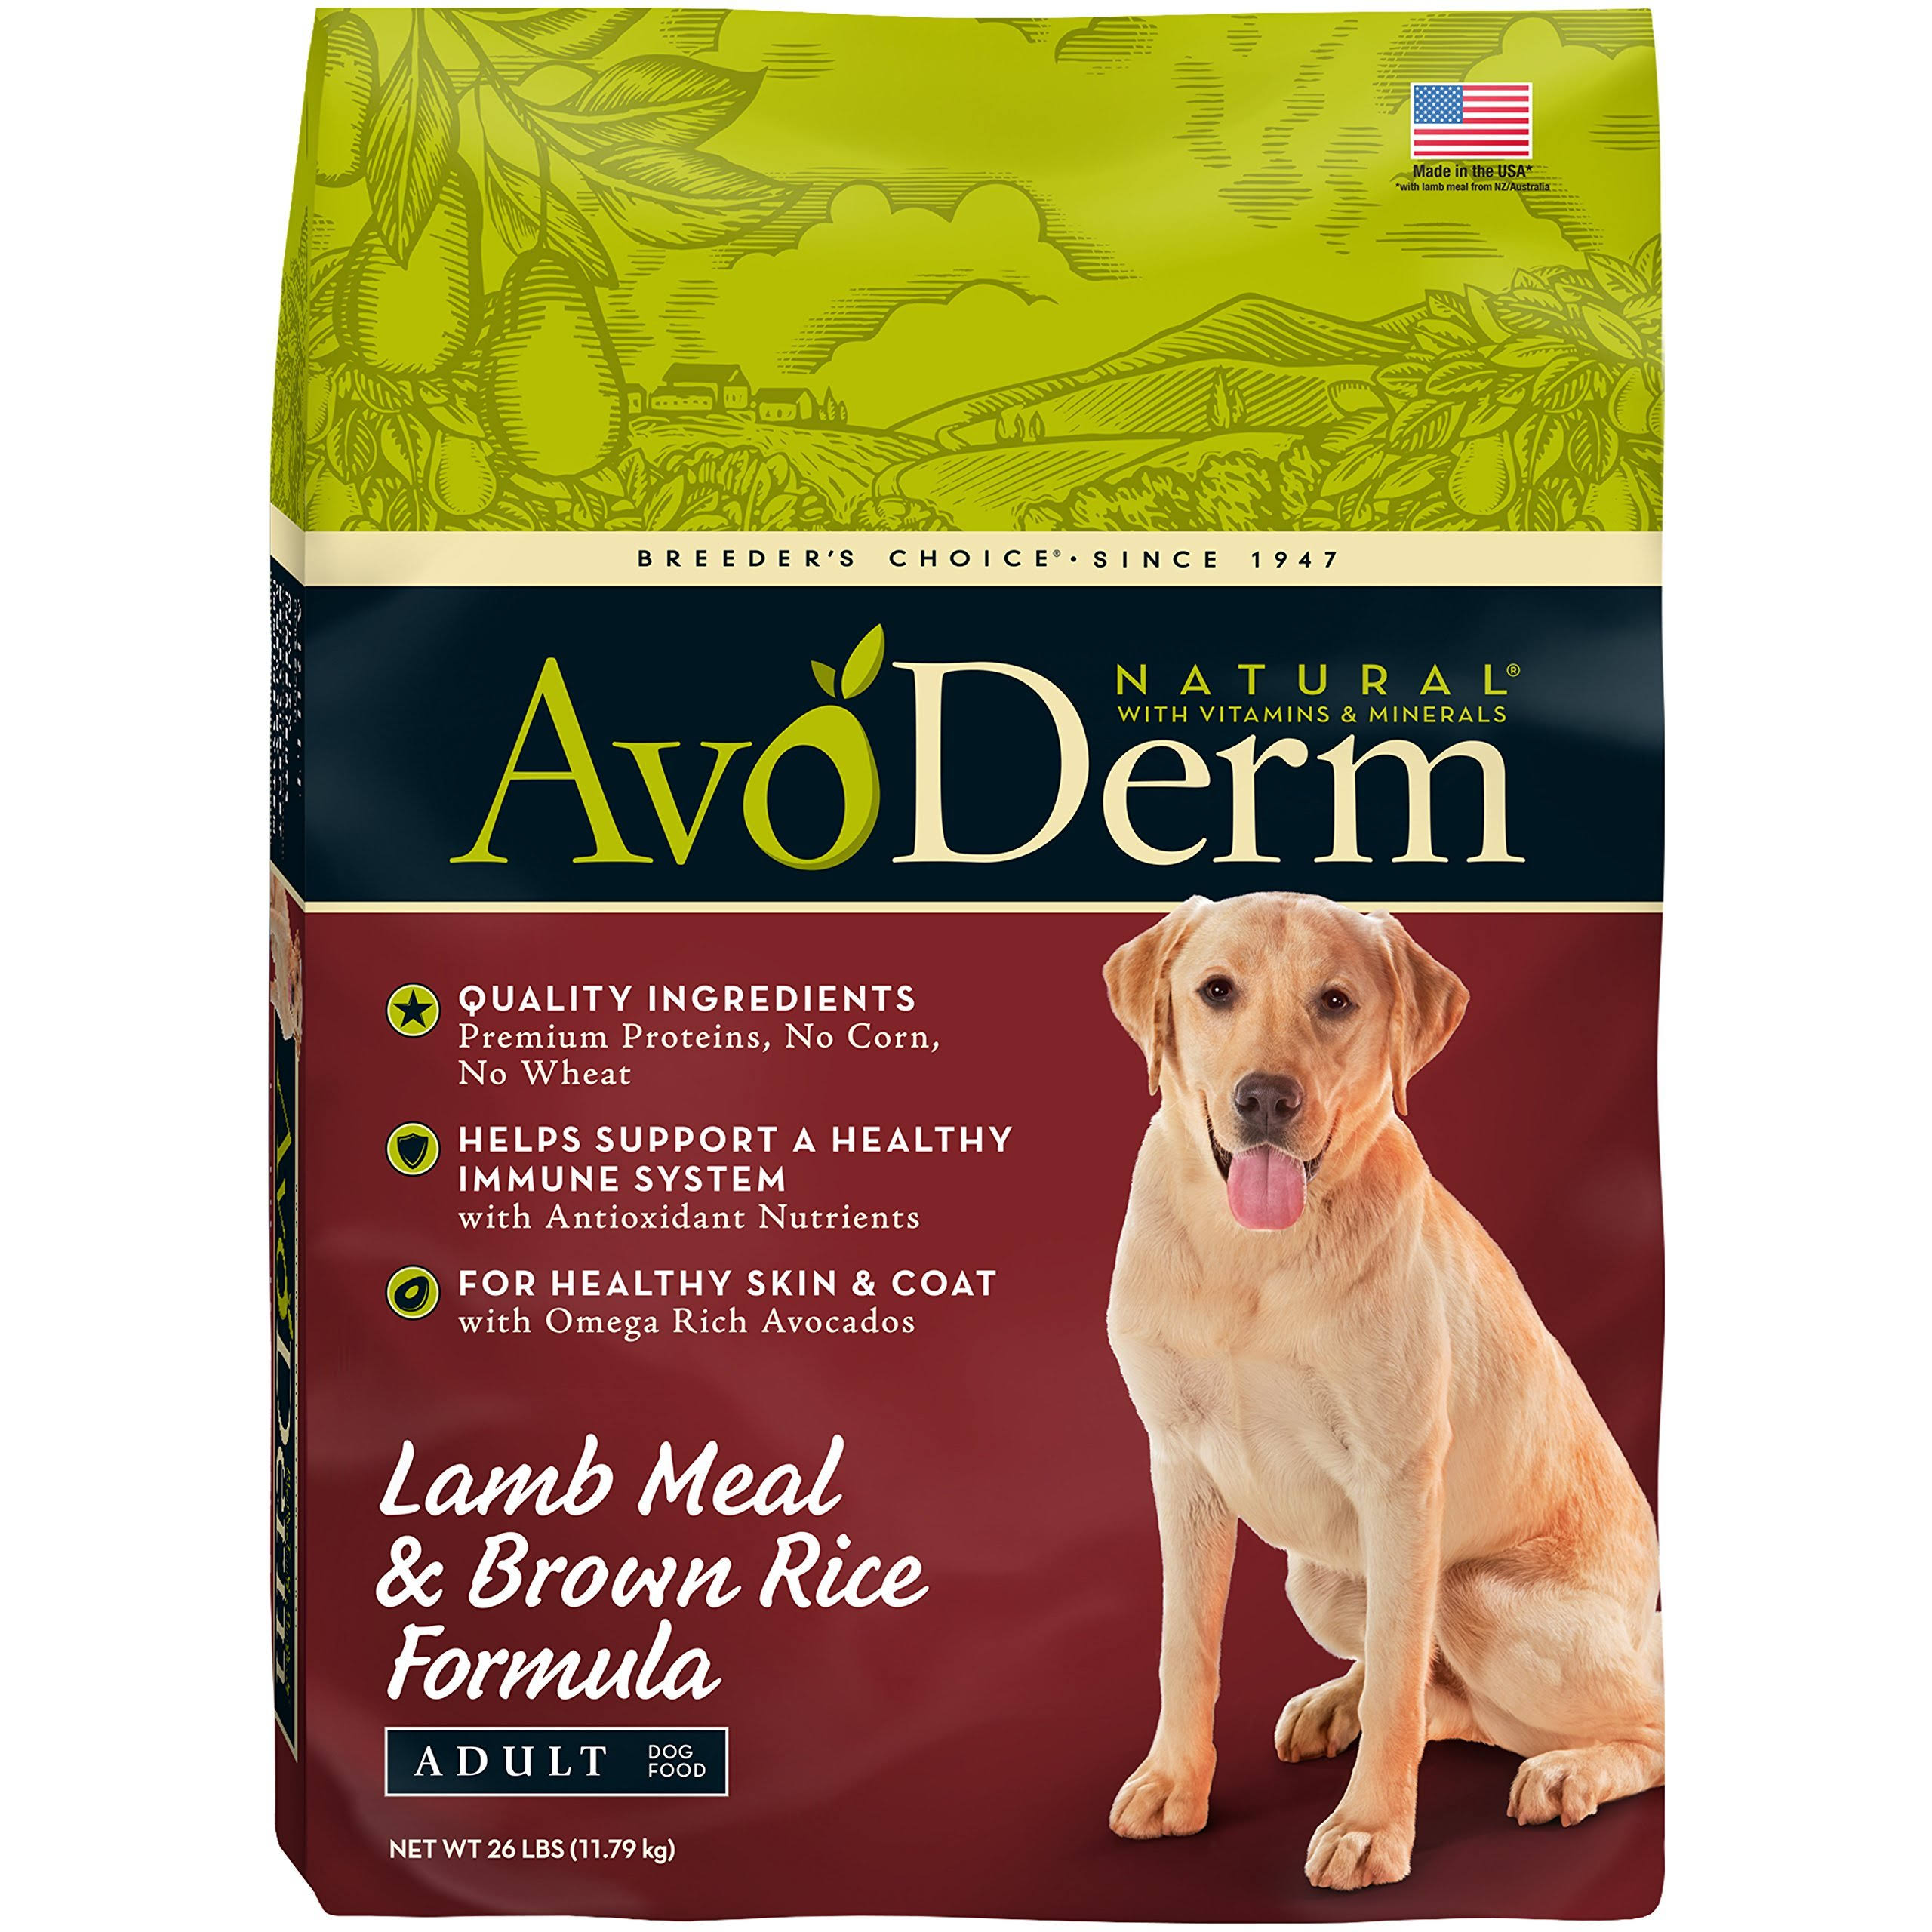 Avo Derm Dry Dog Food - Lamb Meal and Brown Rice, 26lbs